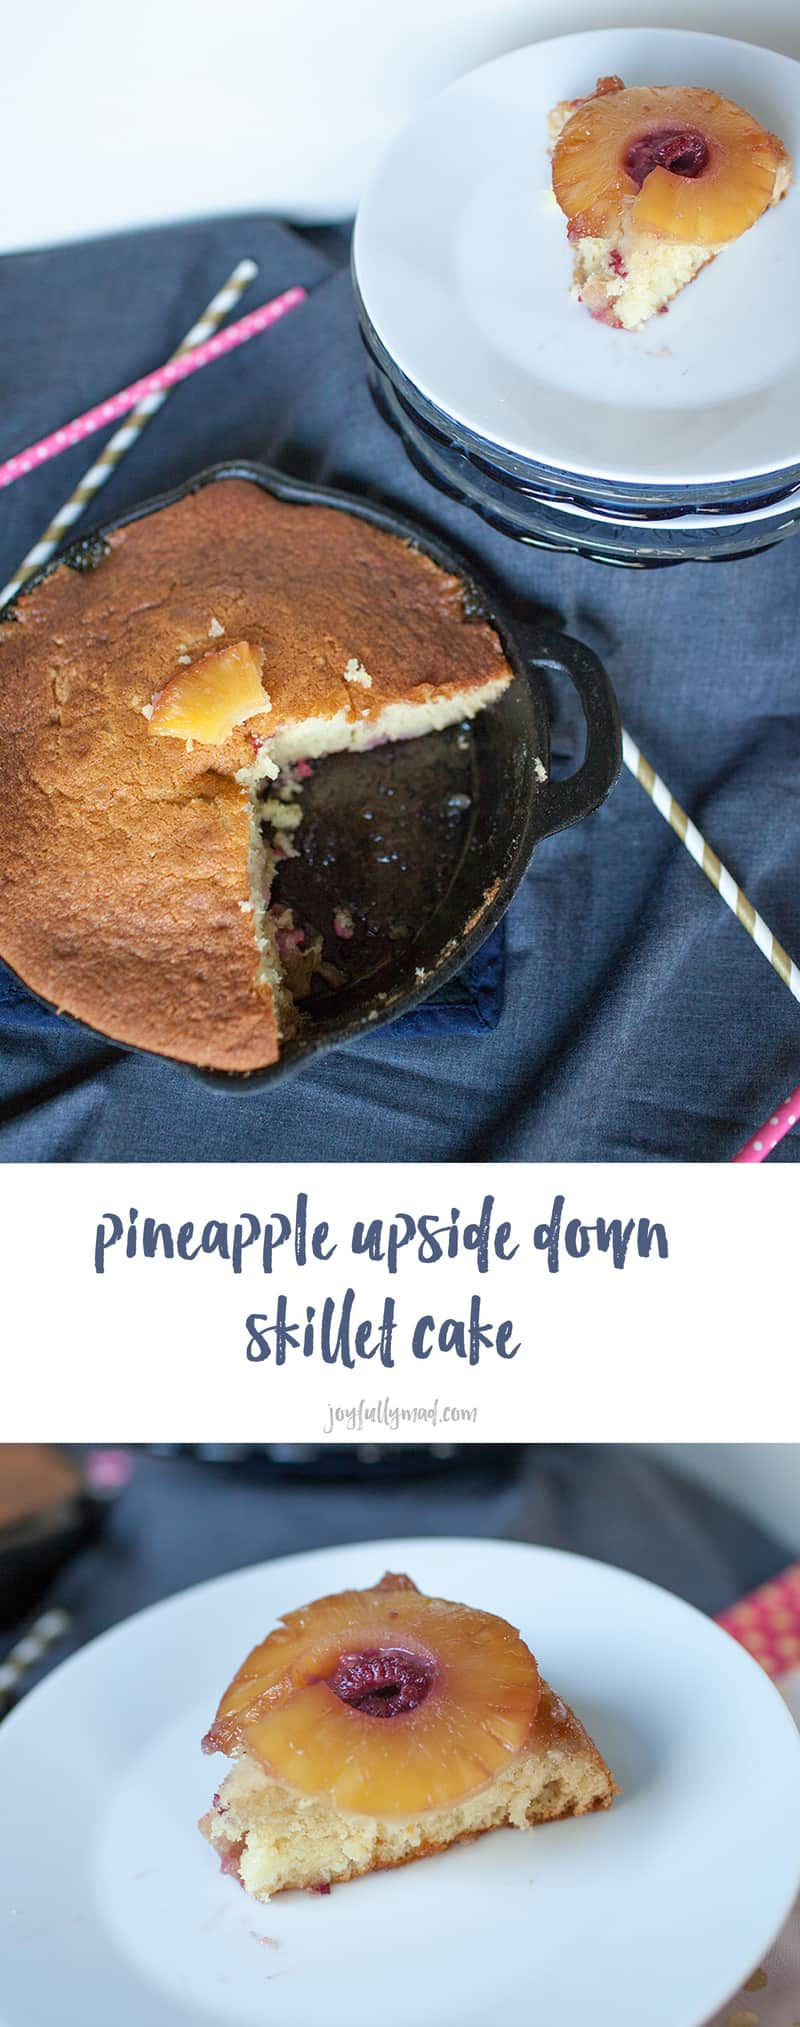 This super easy dessert recipe is on that any one cake make. This classic pineapple upside down skillet cake is made in a cast iron skillet, giving it an extra rustic touch!